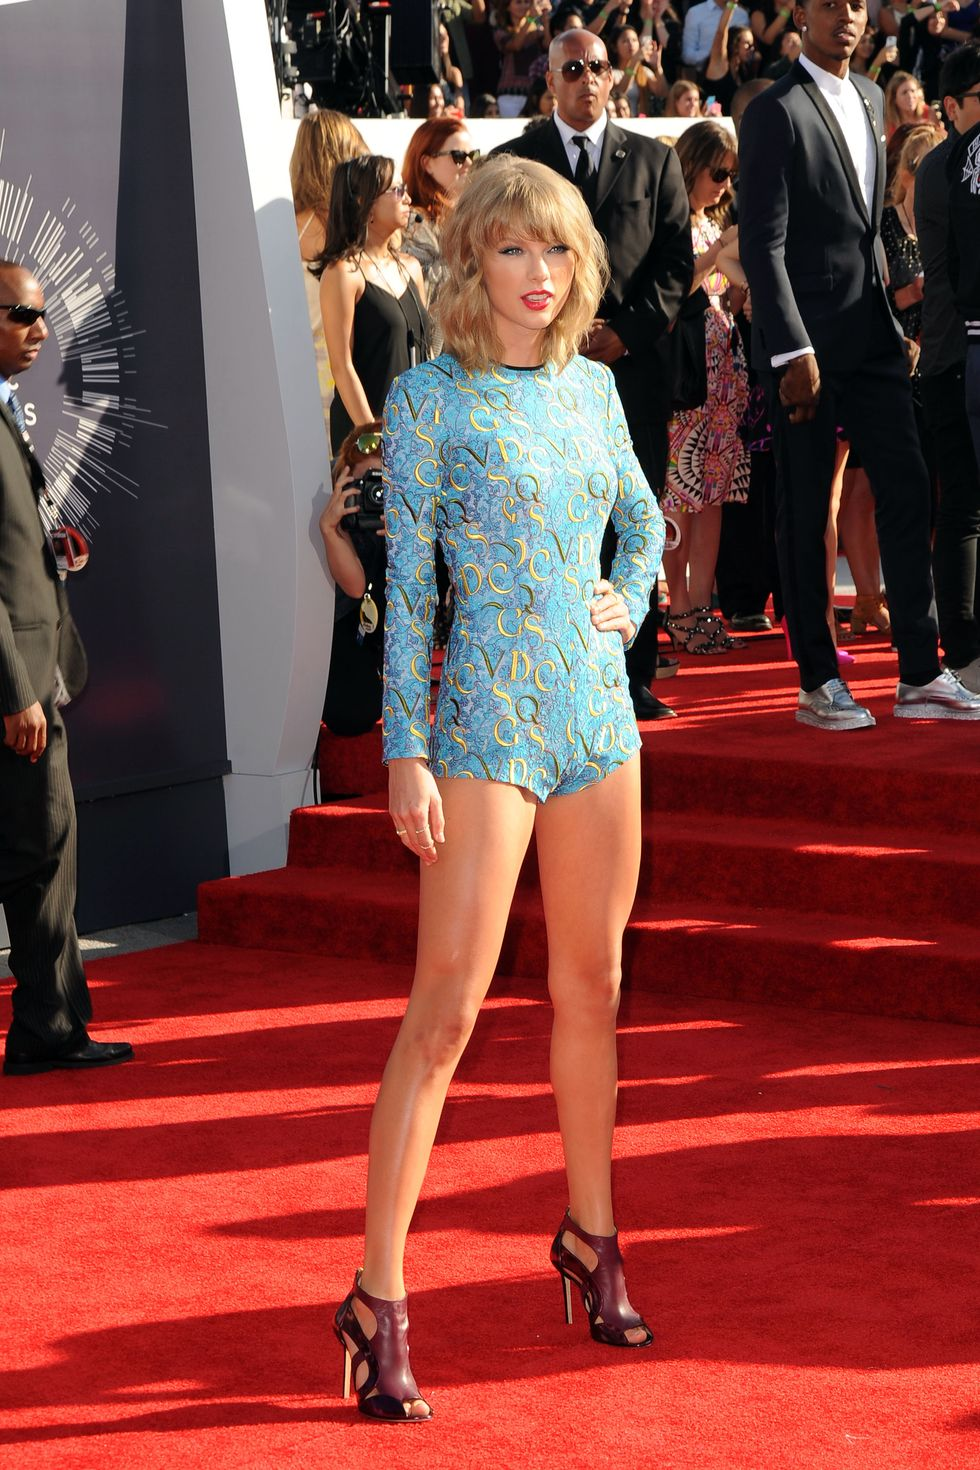 The 20 Best and Worst Celebrity Looks at the MTV VMAs